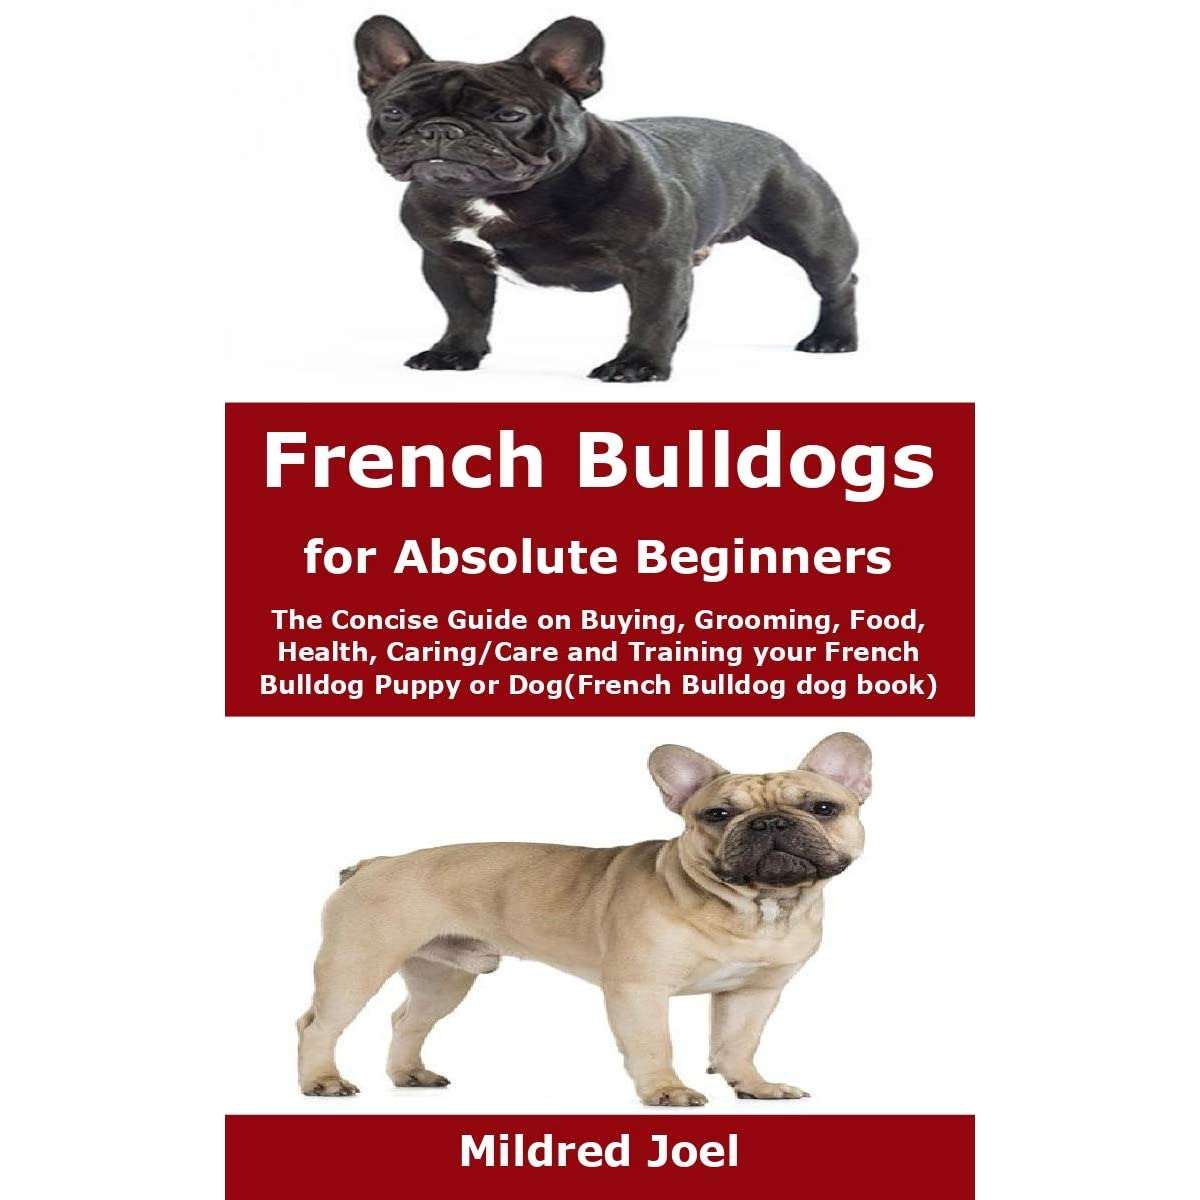 French Bulldogs For Absolute Beginners The Concise Guide On Buying Grooming Food Health Caring Care And Training Your French Bulldog Puppy Or Dog By Mildred Joel